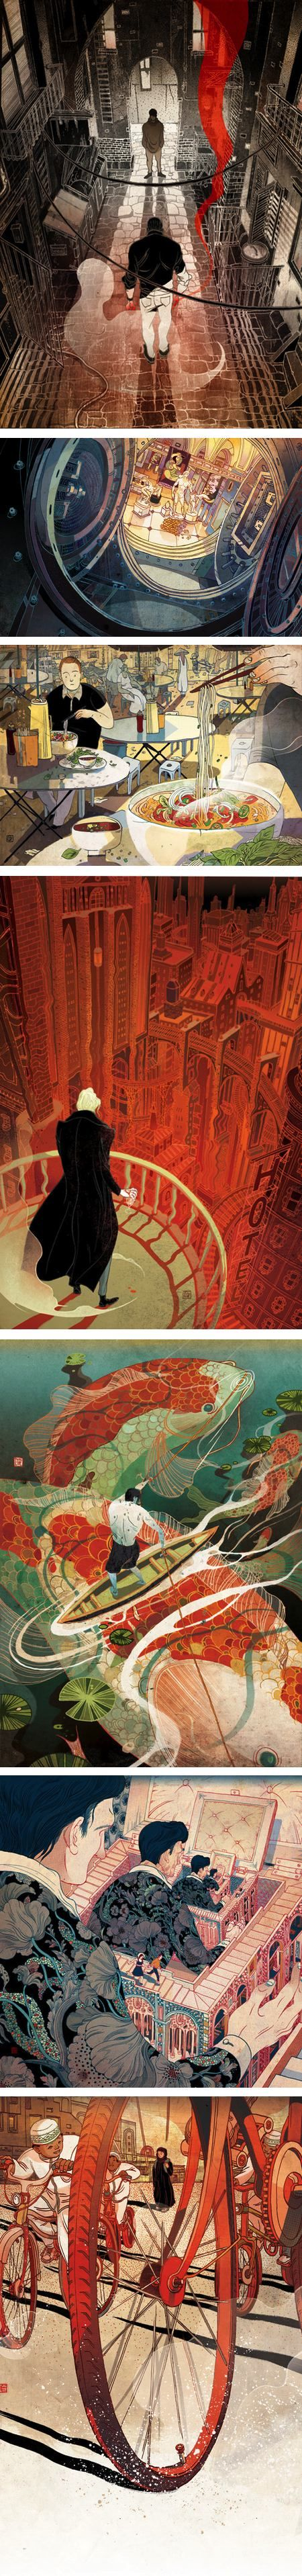 Victo Ngai | Lines and Colors :: a blog about drawing, painting, illustration, comics, concept art and other visual arts: